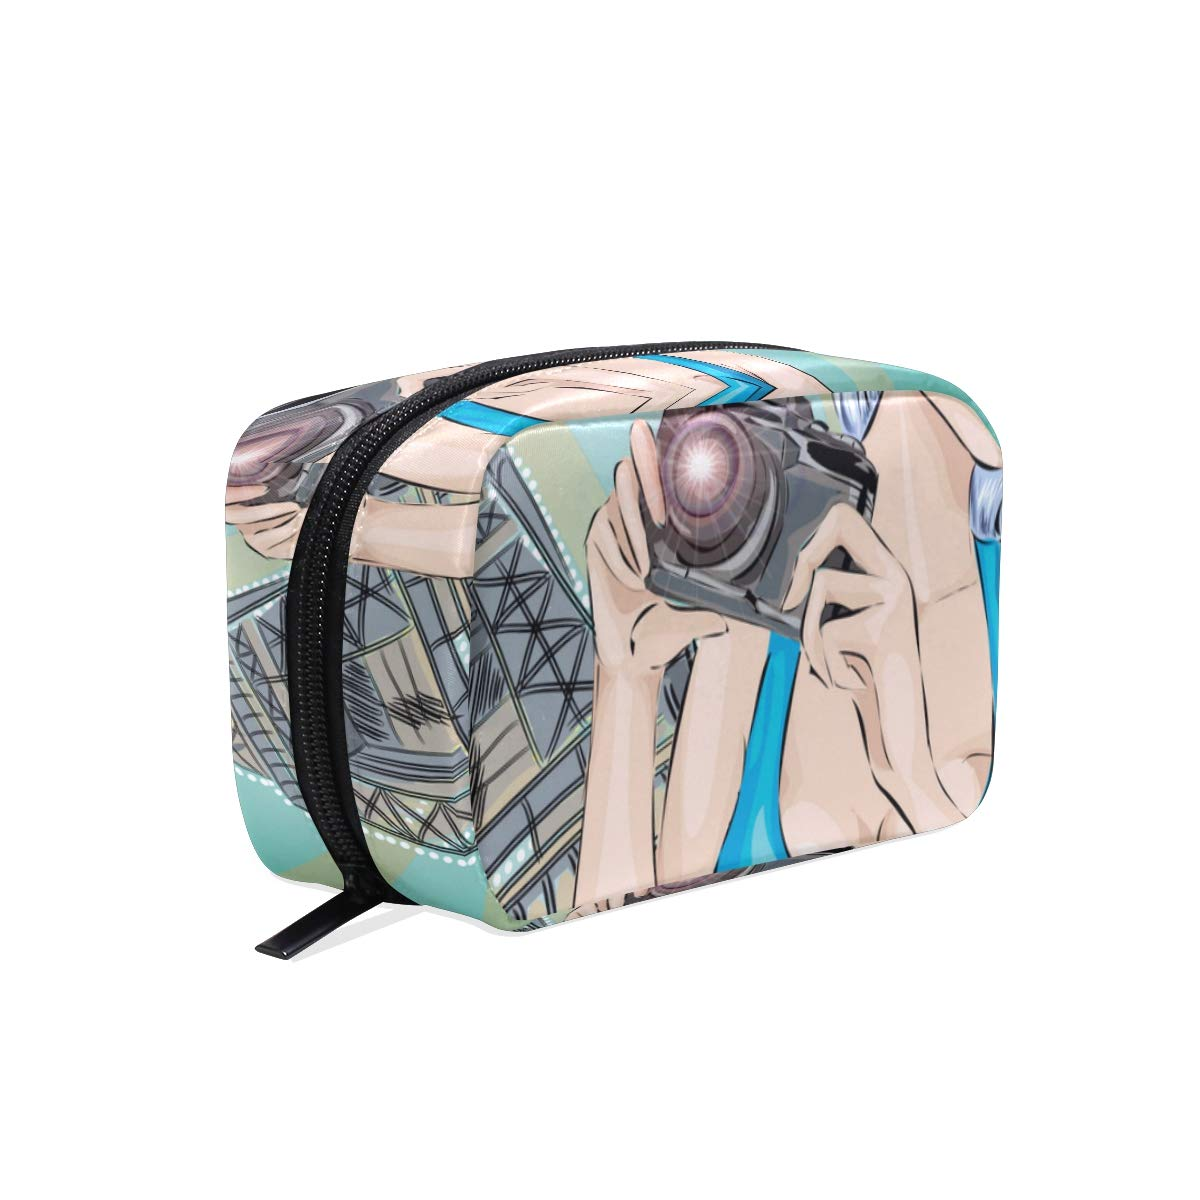 CIKYOWAY Cosmetic Bag for Women,Pinup Sexy Woman Takes Pictures On,Fashion Mini Girl Cosmetic Bag Travel Cases Portable Makeup Bags Personalized Custom Pattern